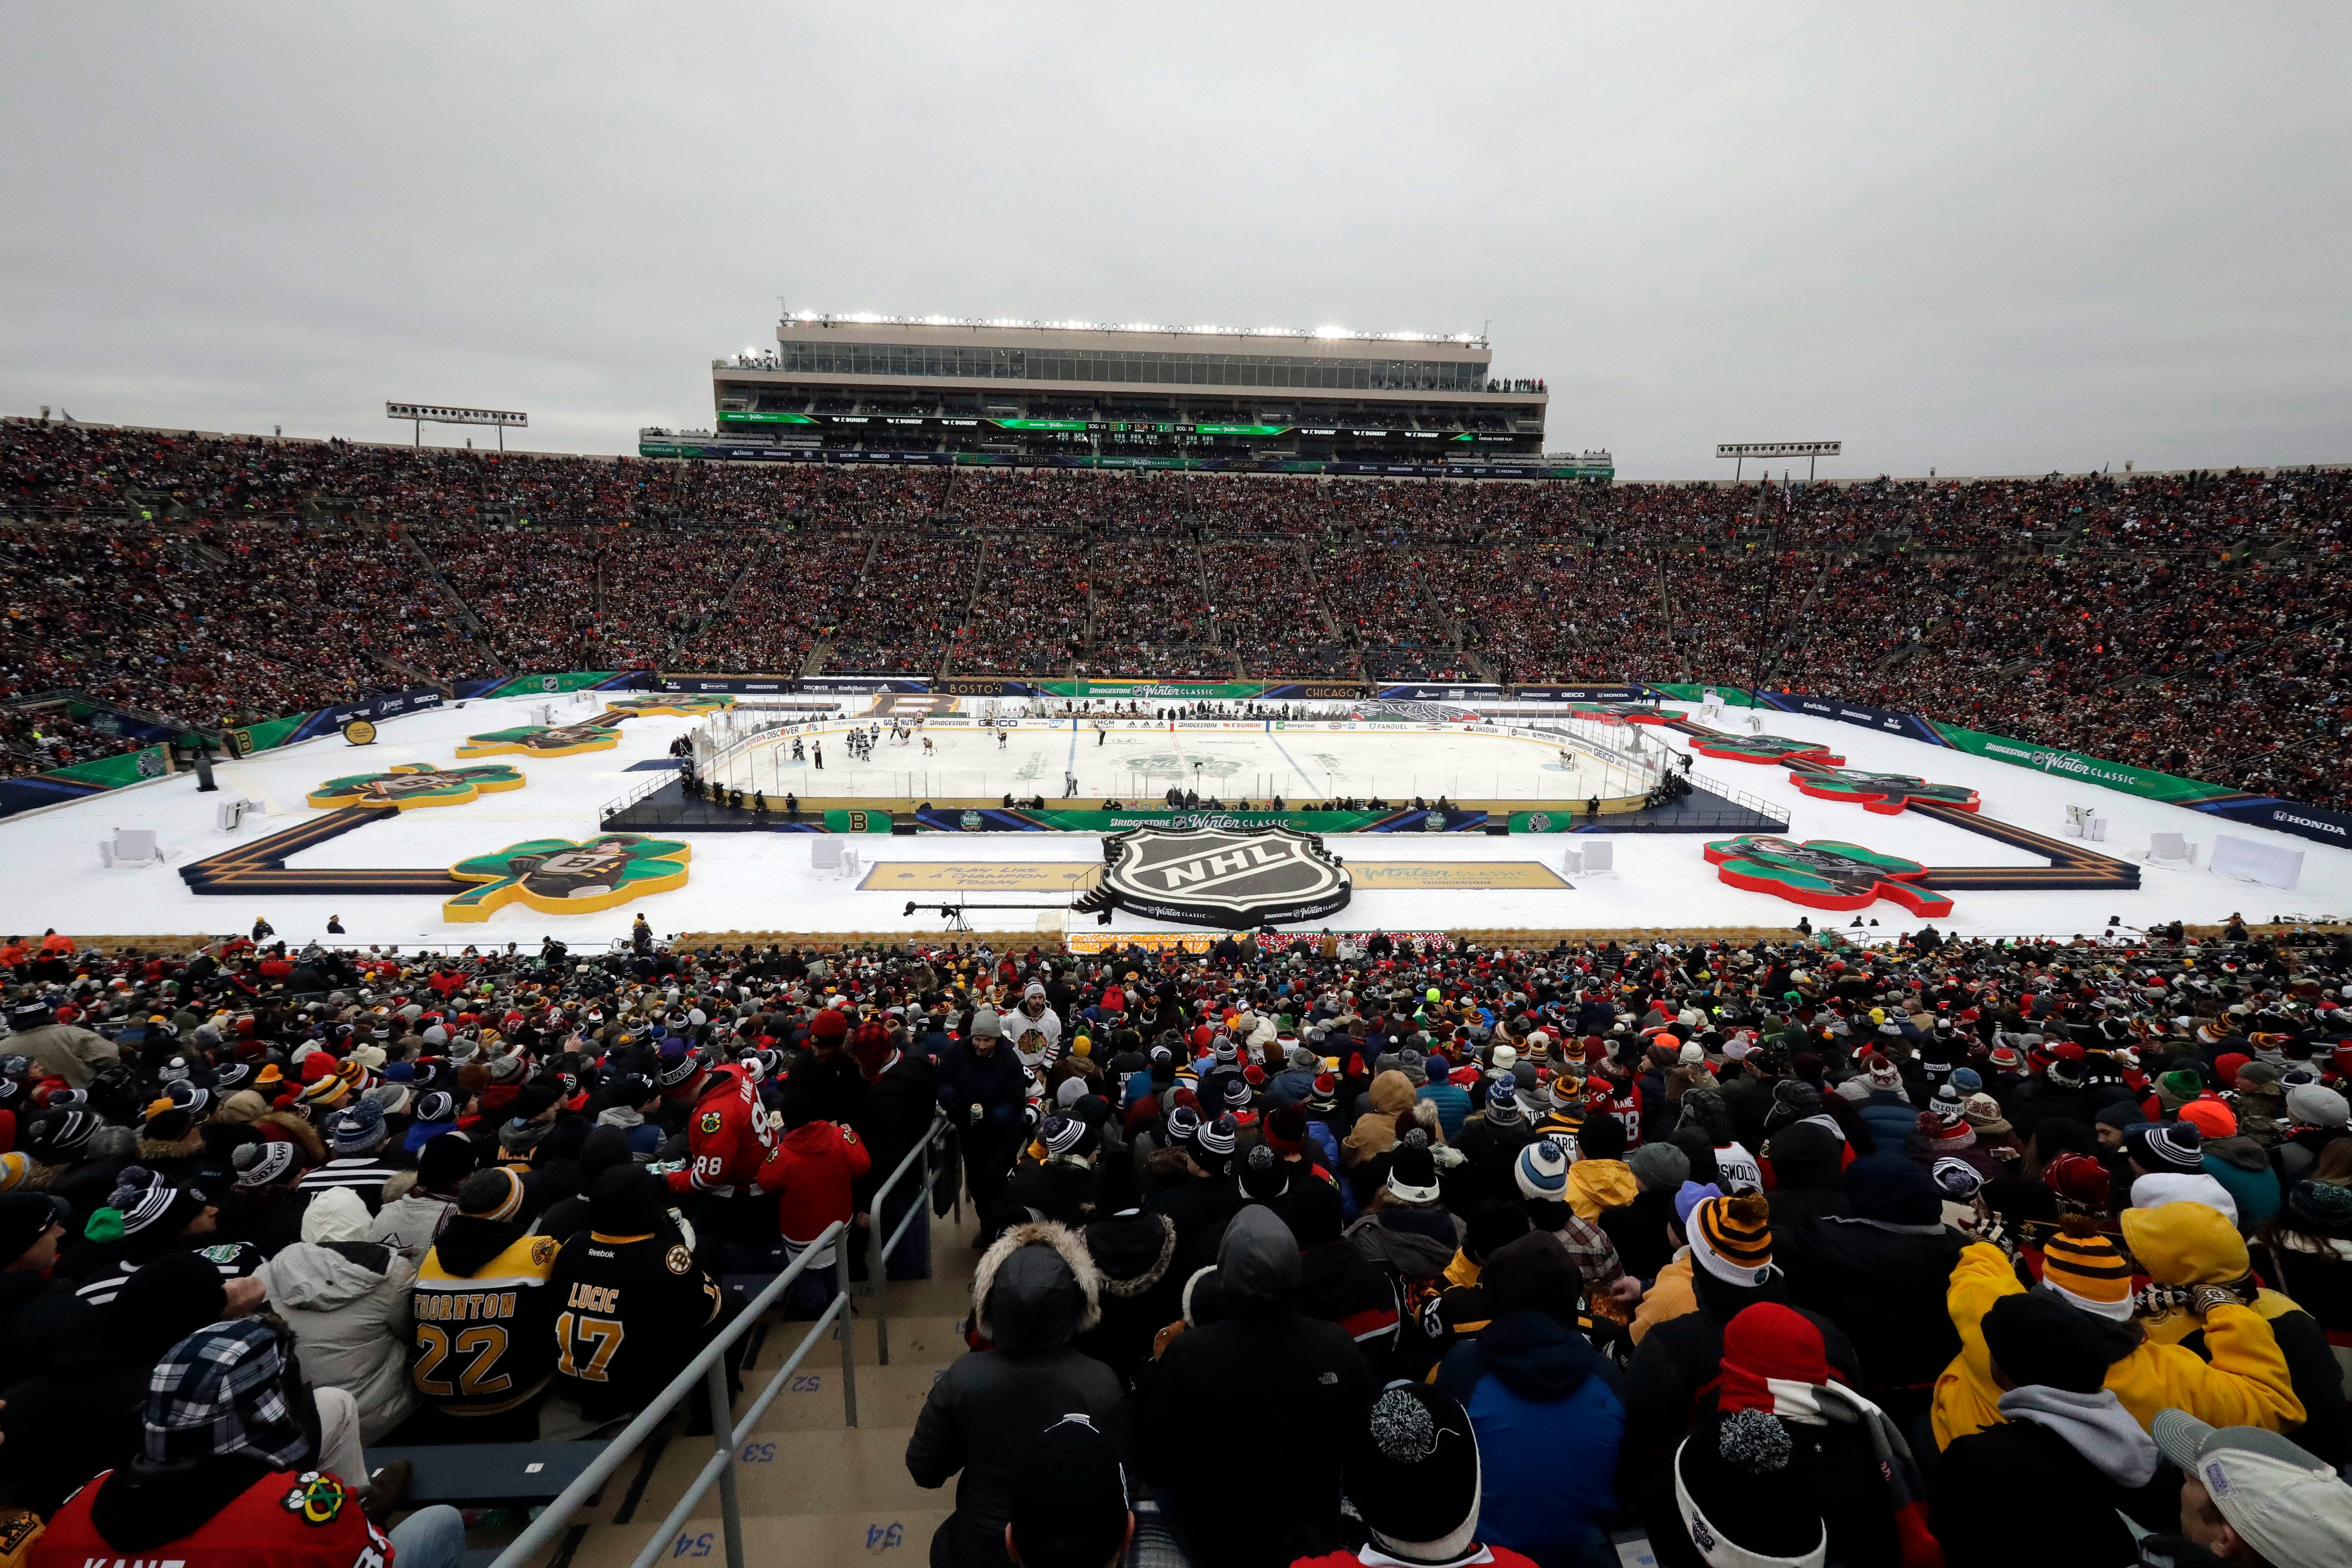 Bruins down Blackhawks 4-2 in Winter Classic